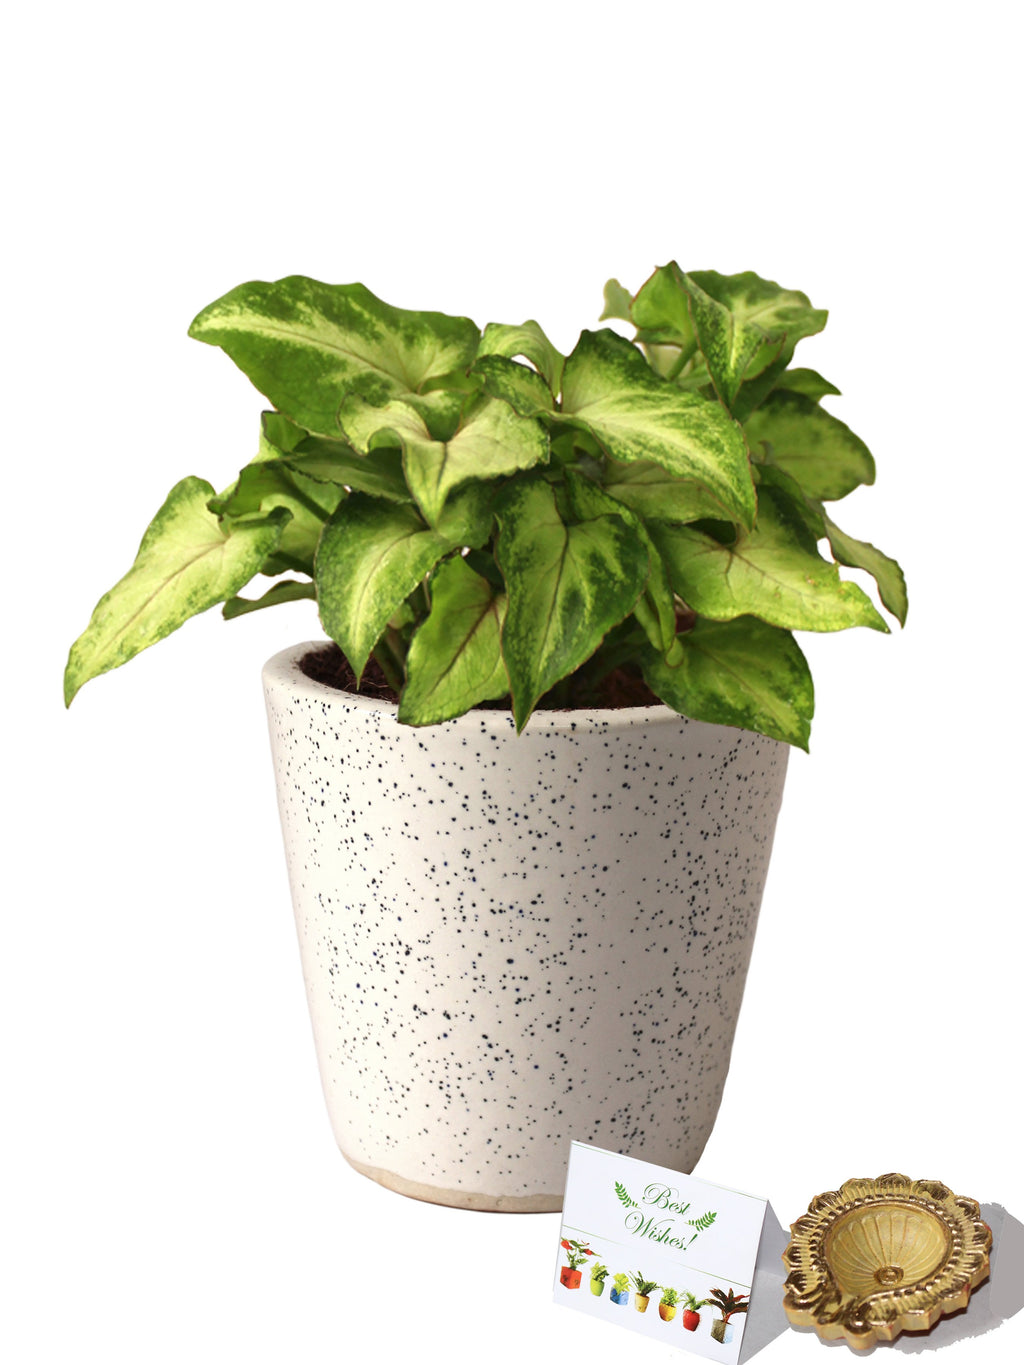 Rolling Nature Diwali Gift Combo of Good Luck Air Purifying Live Green Syngonium Plant in White Bucket Dew Ceramic Pot